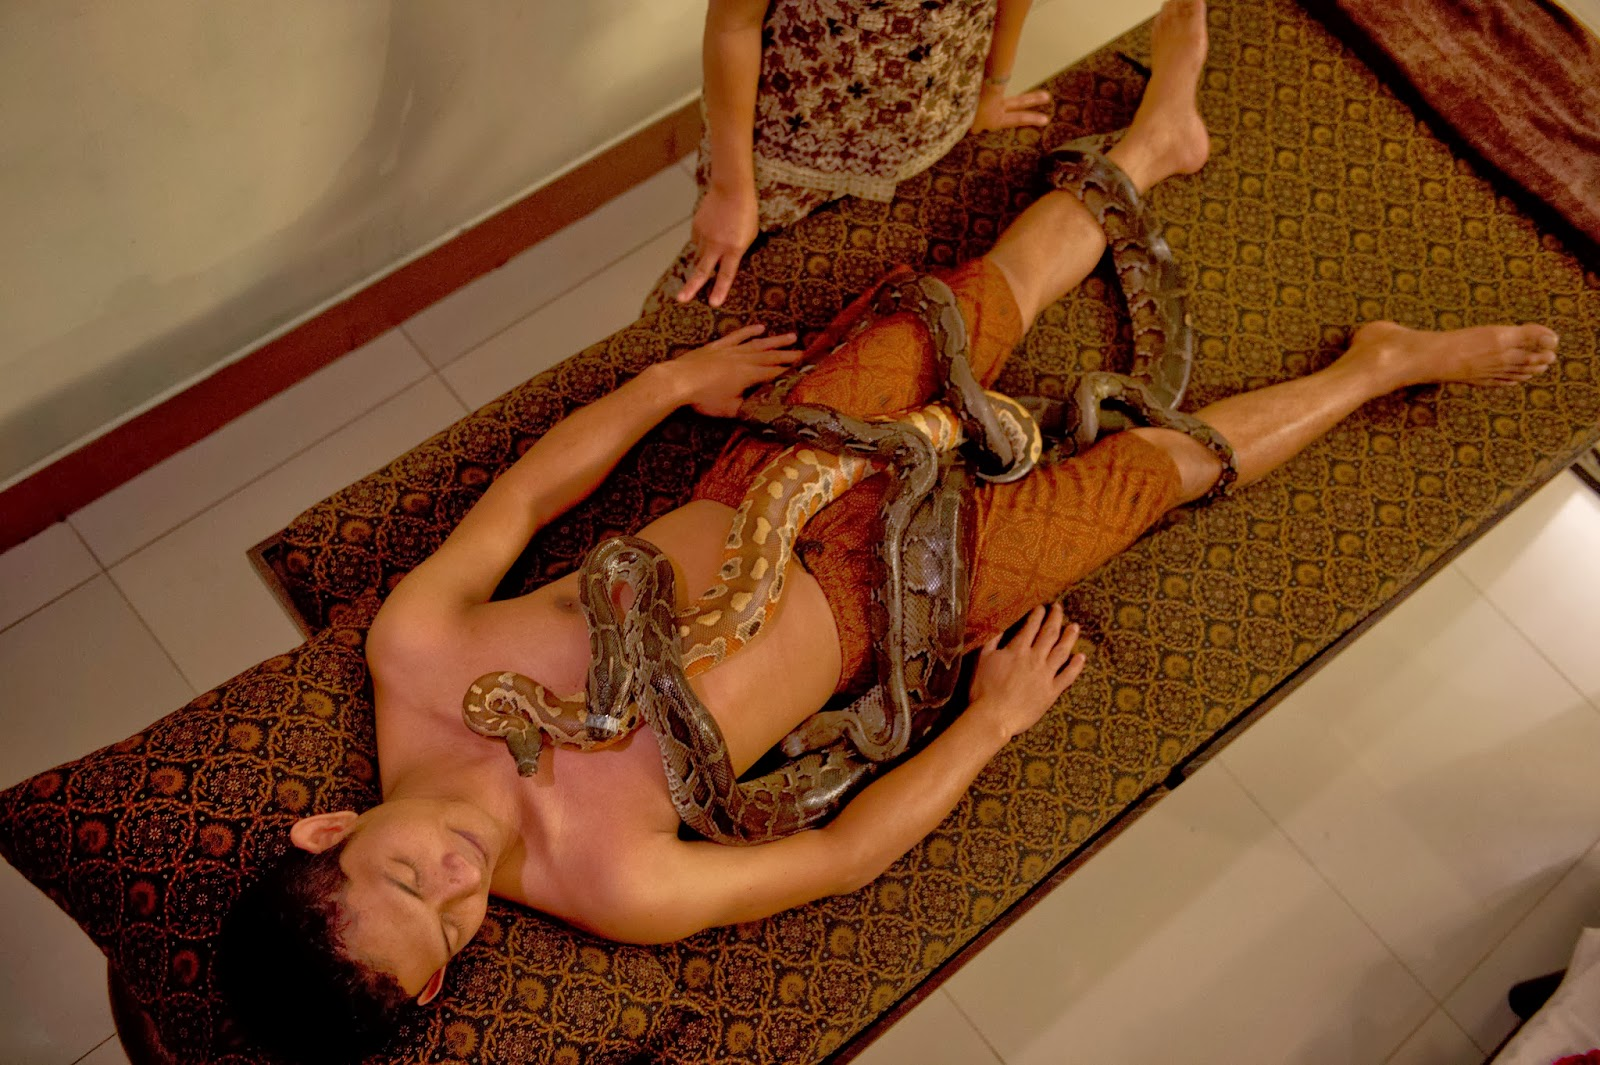 Snake Body Massage - Chill out with a fang-tastic full-body python massage